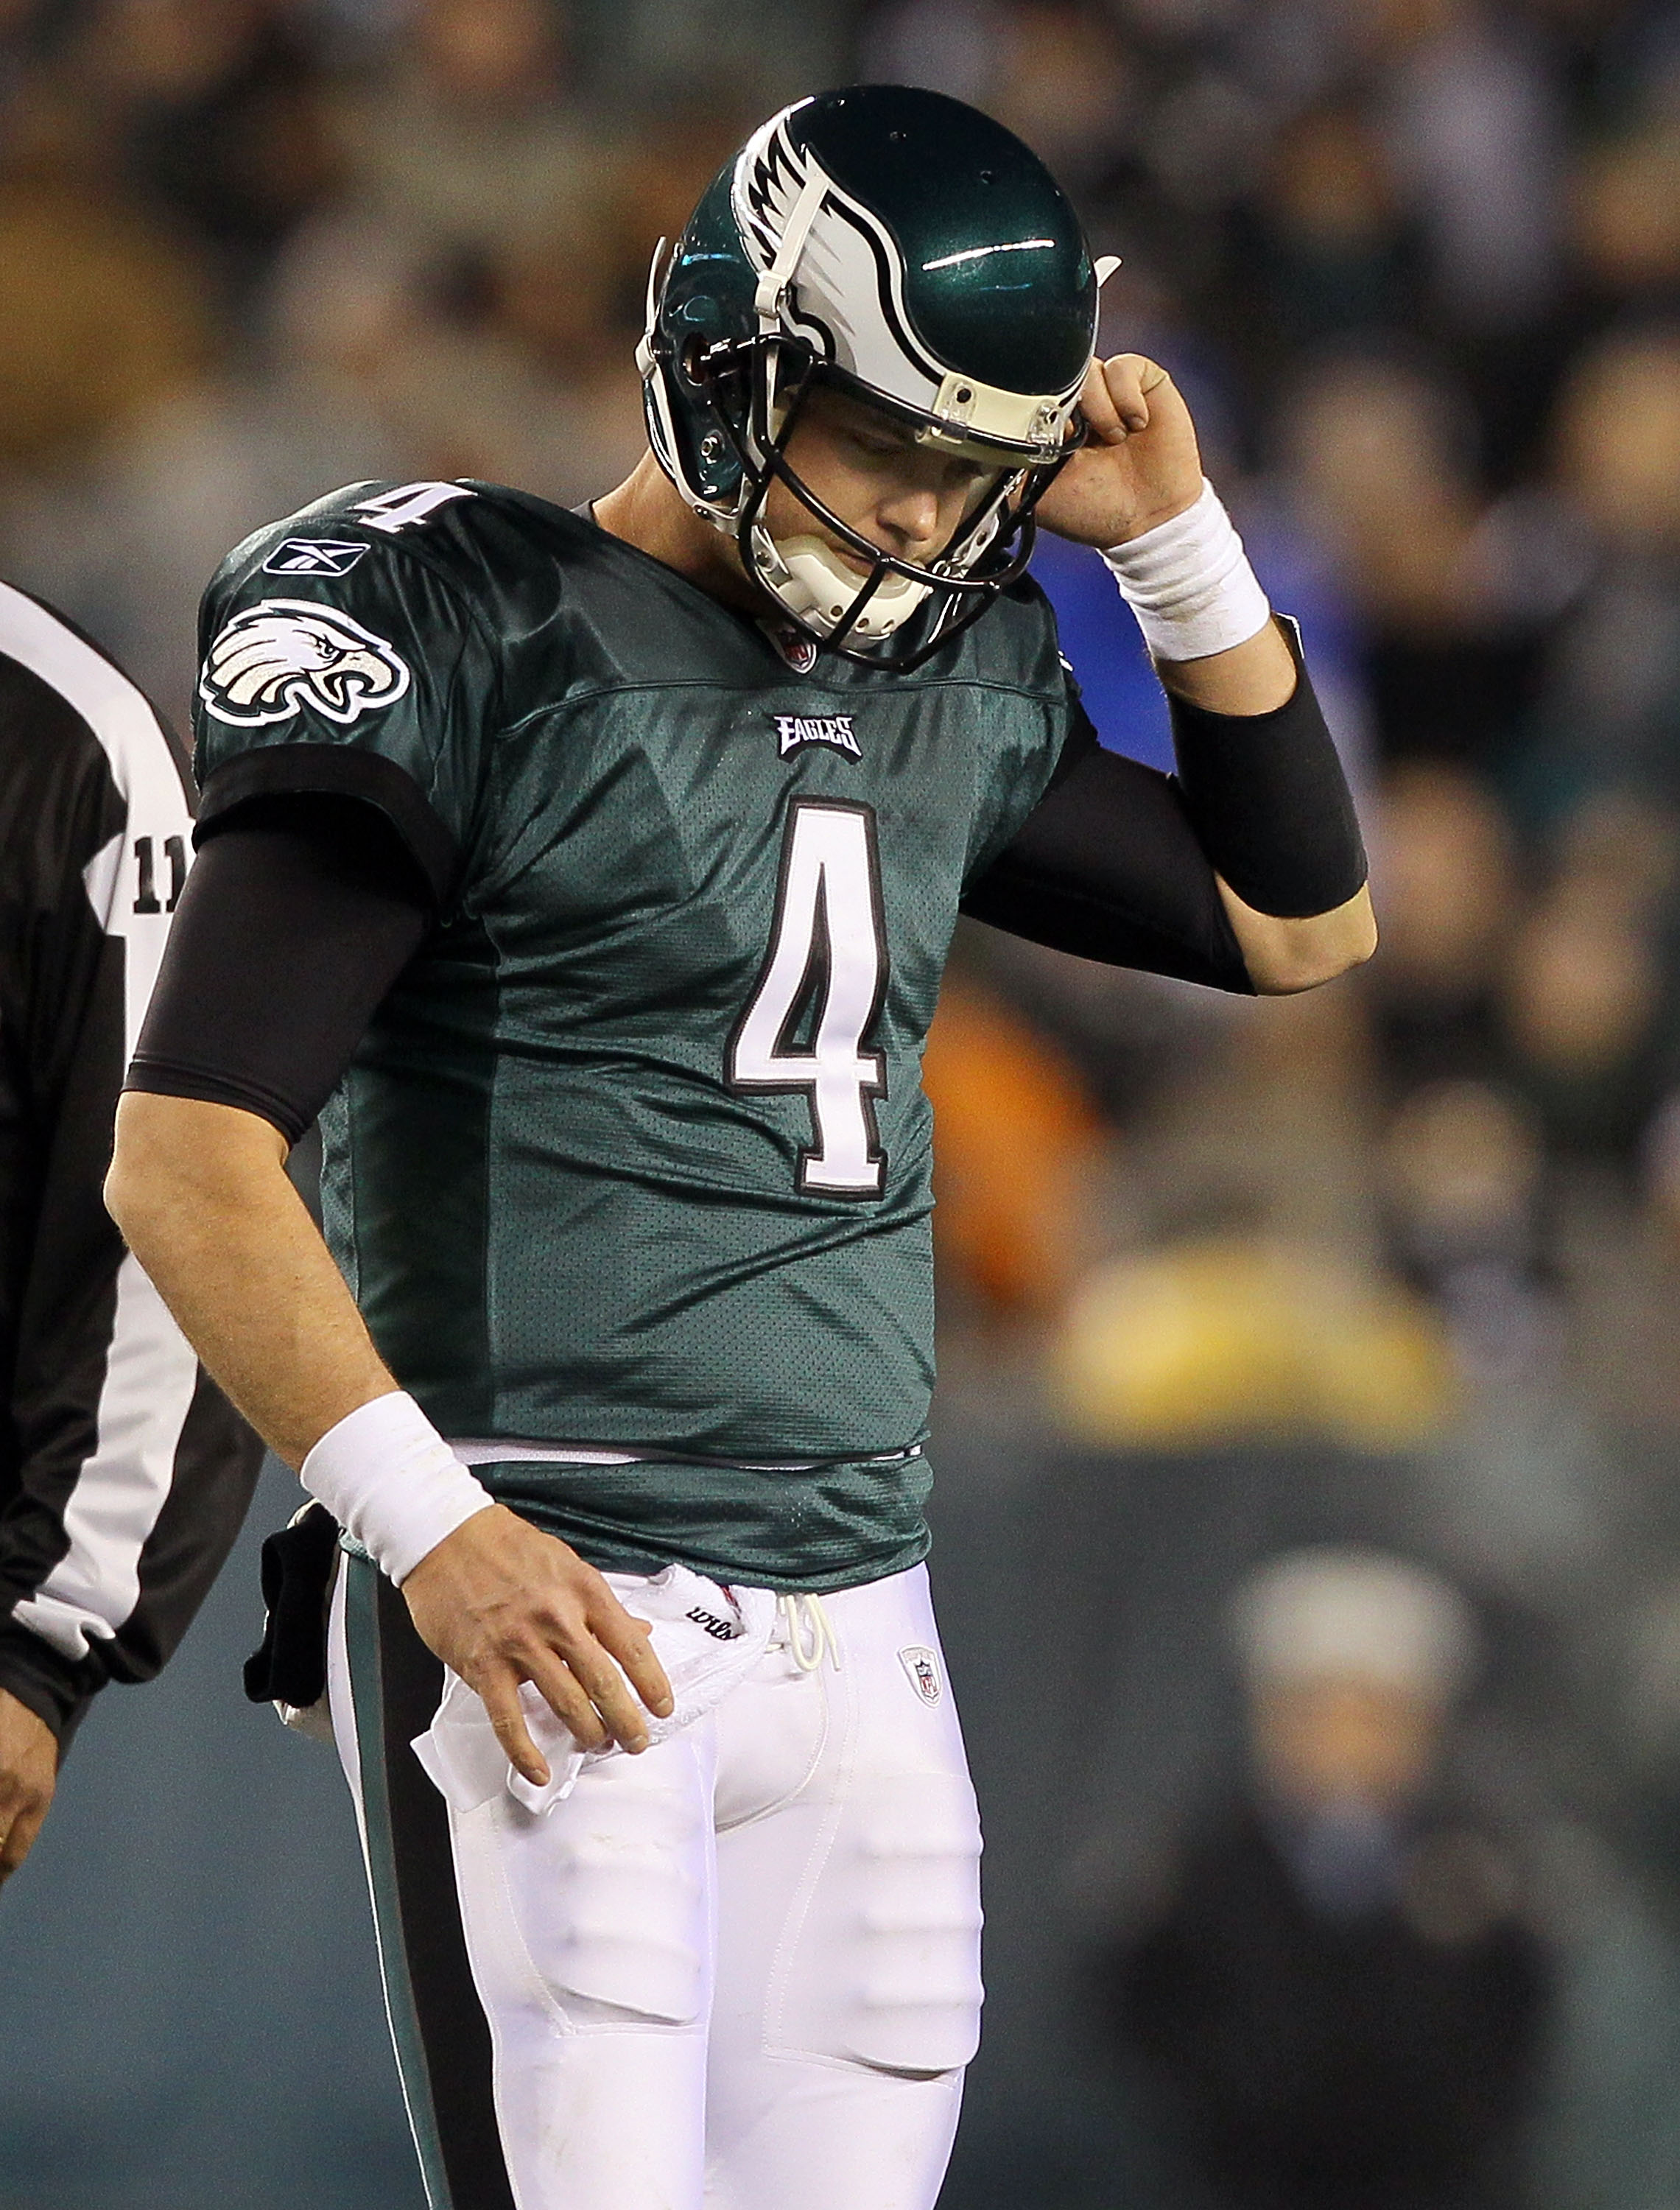 PHILADELPHIA, PA - JANUARY 02:  Kevin Kolb #4 of the Philadelphia Eagles looks on against the Dallas Cowboys on January 2, 2011 at Lincoln Financial Field in Philadelphia, Pennsylvania.  (Photo by Jim McIsaac/Getty Images)